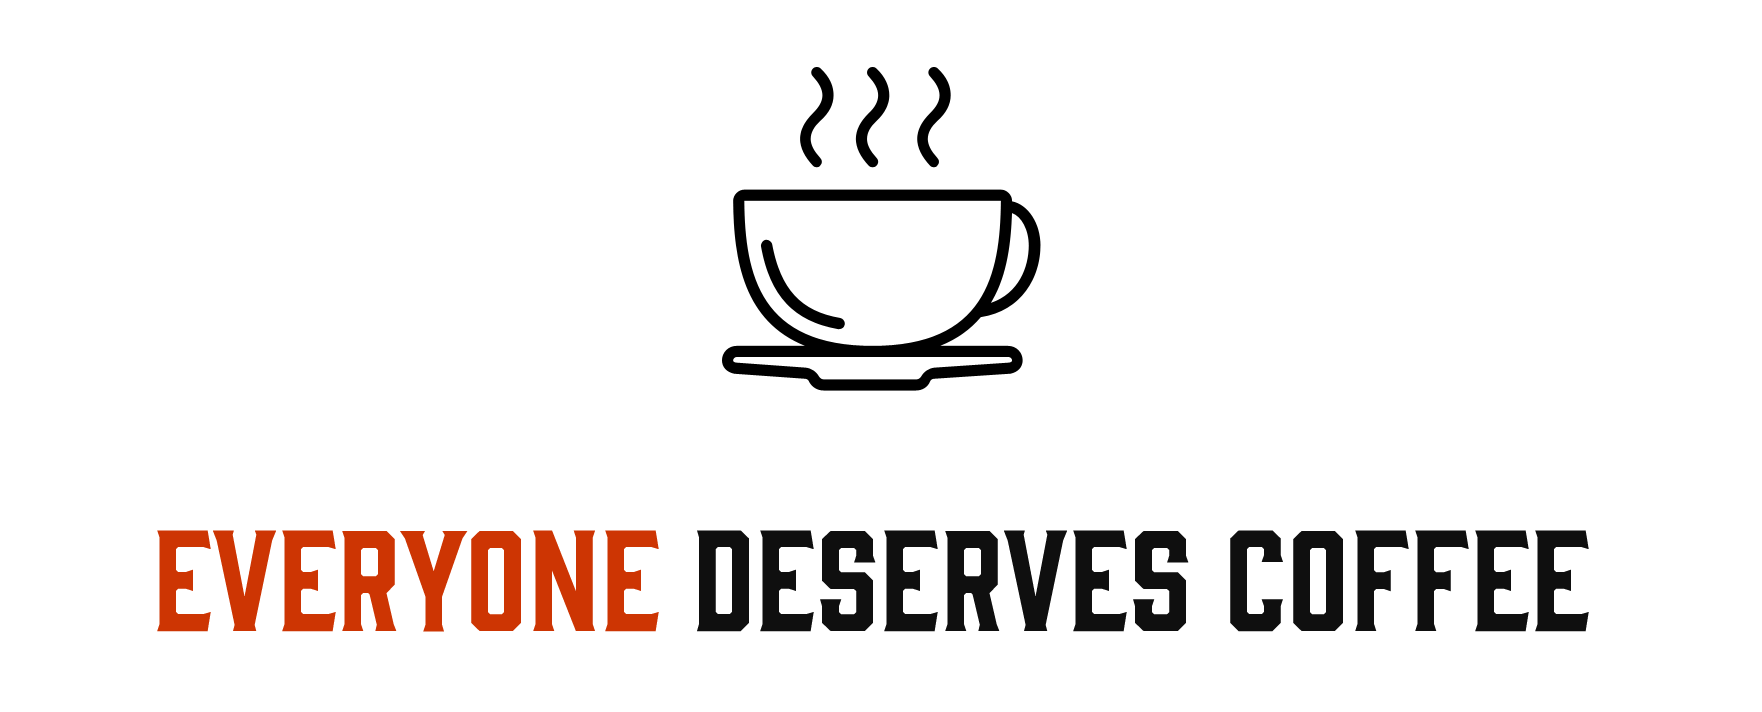 everhyone-deserves-coffee.png